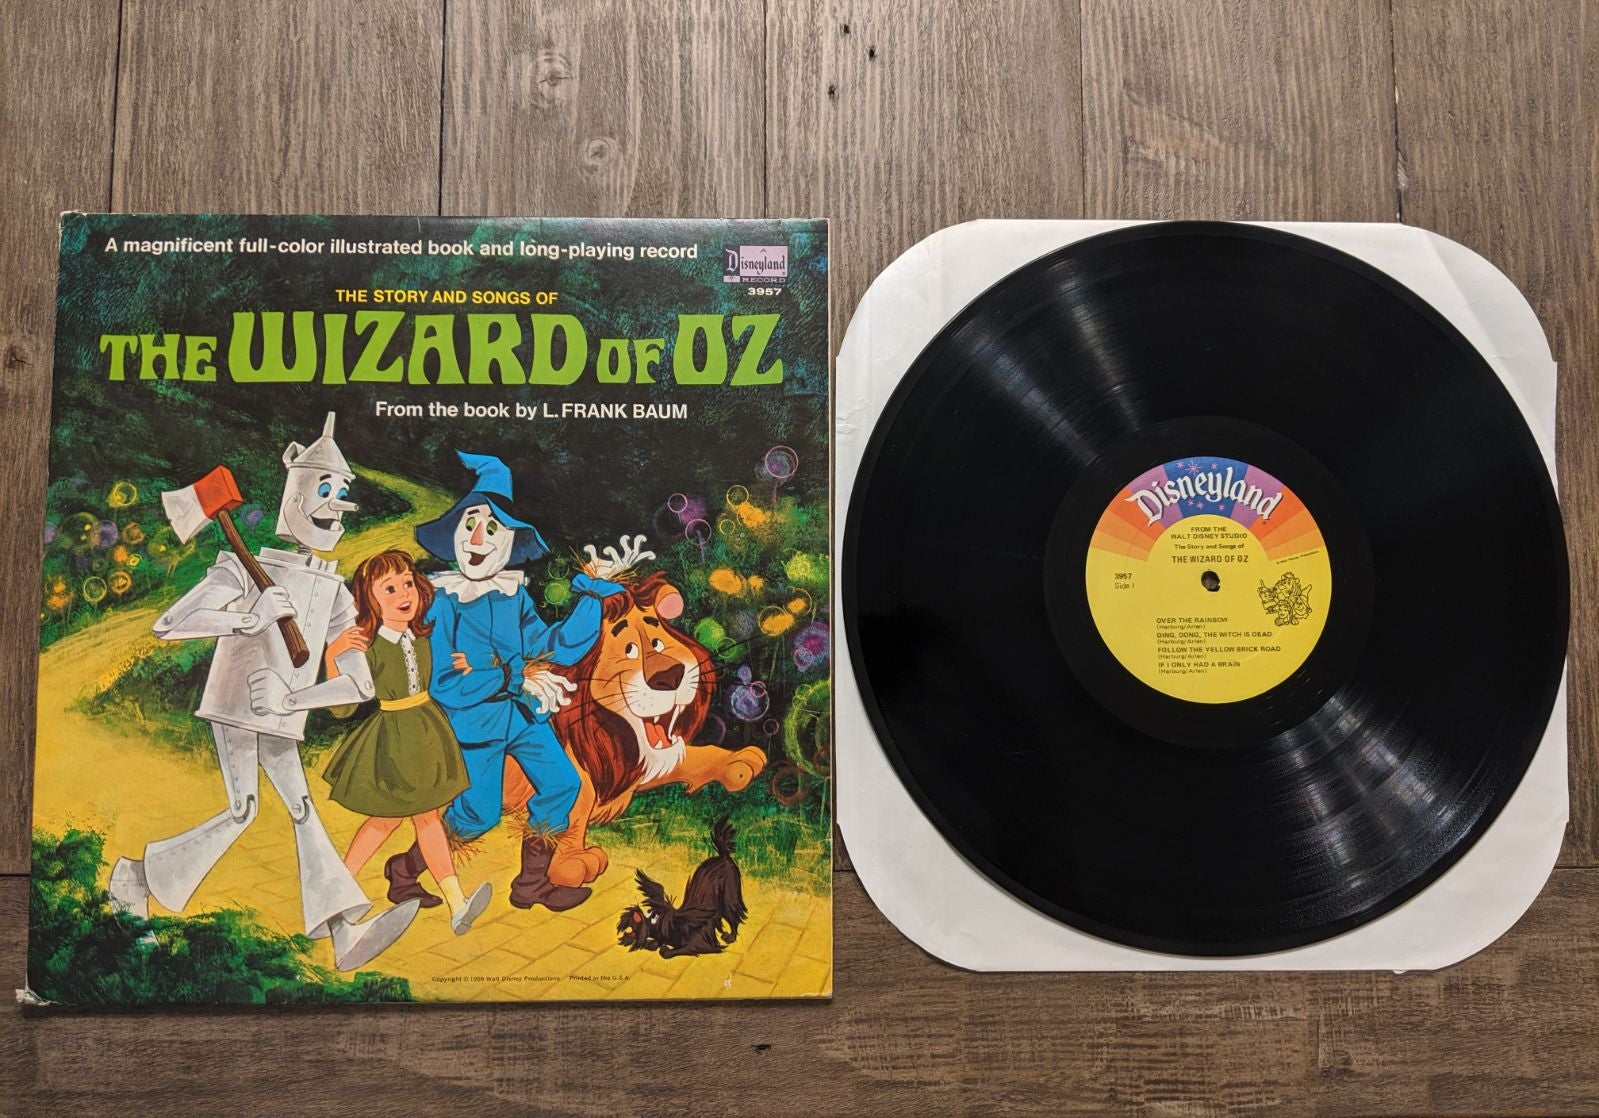 The Wizard of Oz Story & Song Vinyl Book